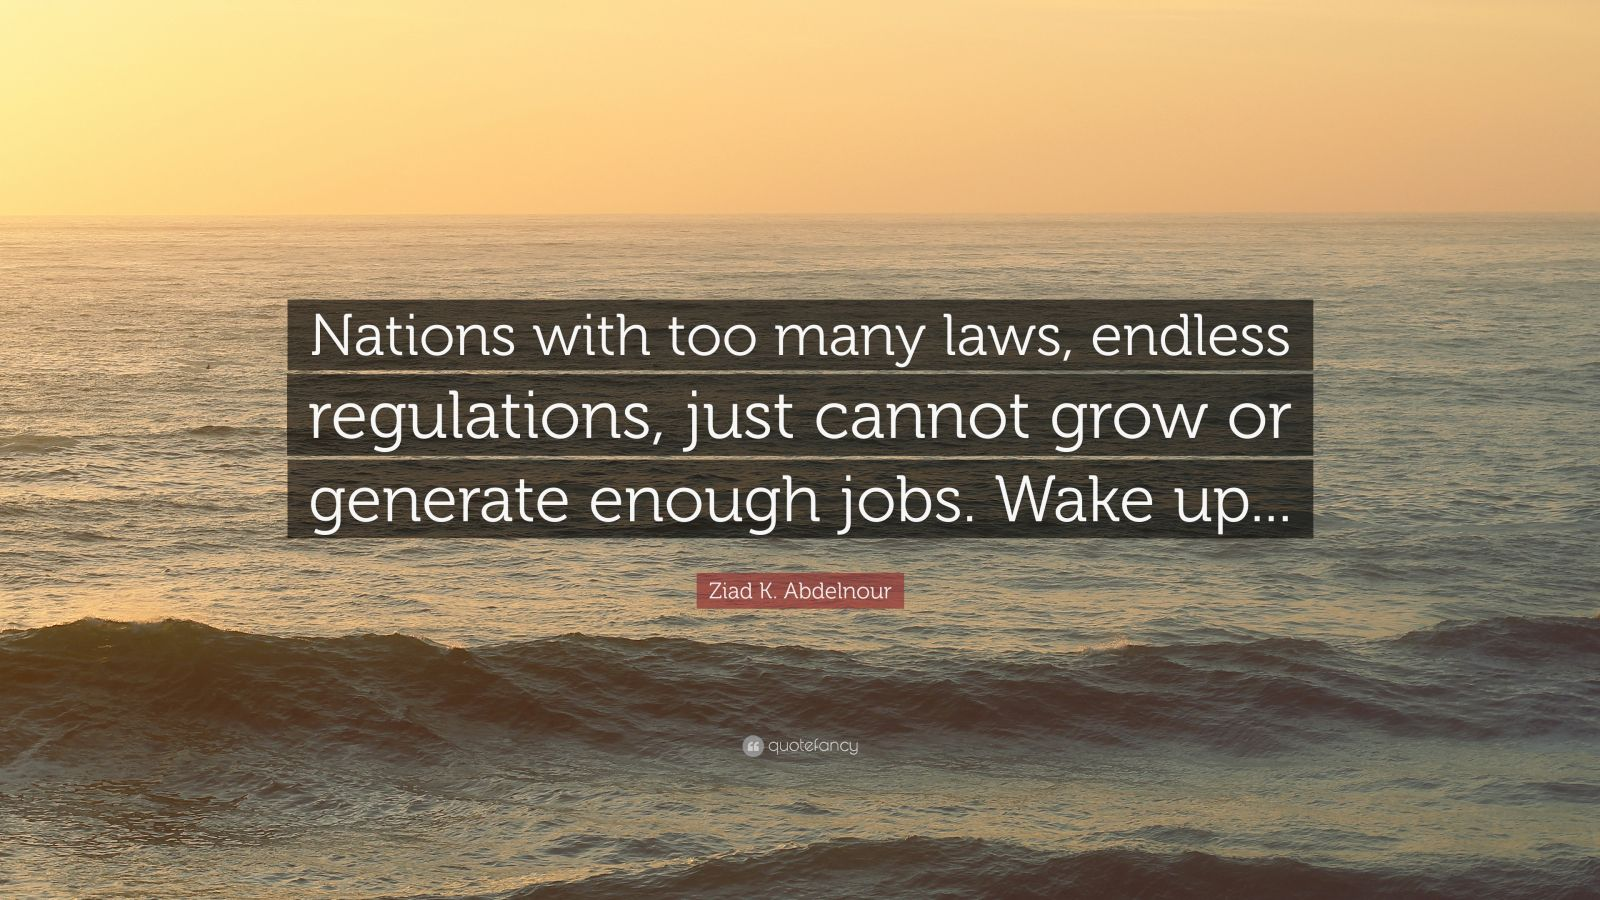 """Ziad K. Abdelnour Quote: """"Nations with too many laws, endless regulations, just cannot grow or generate enough jobs. Wake up..."""""""